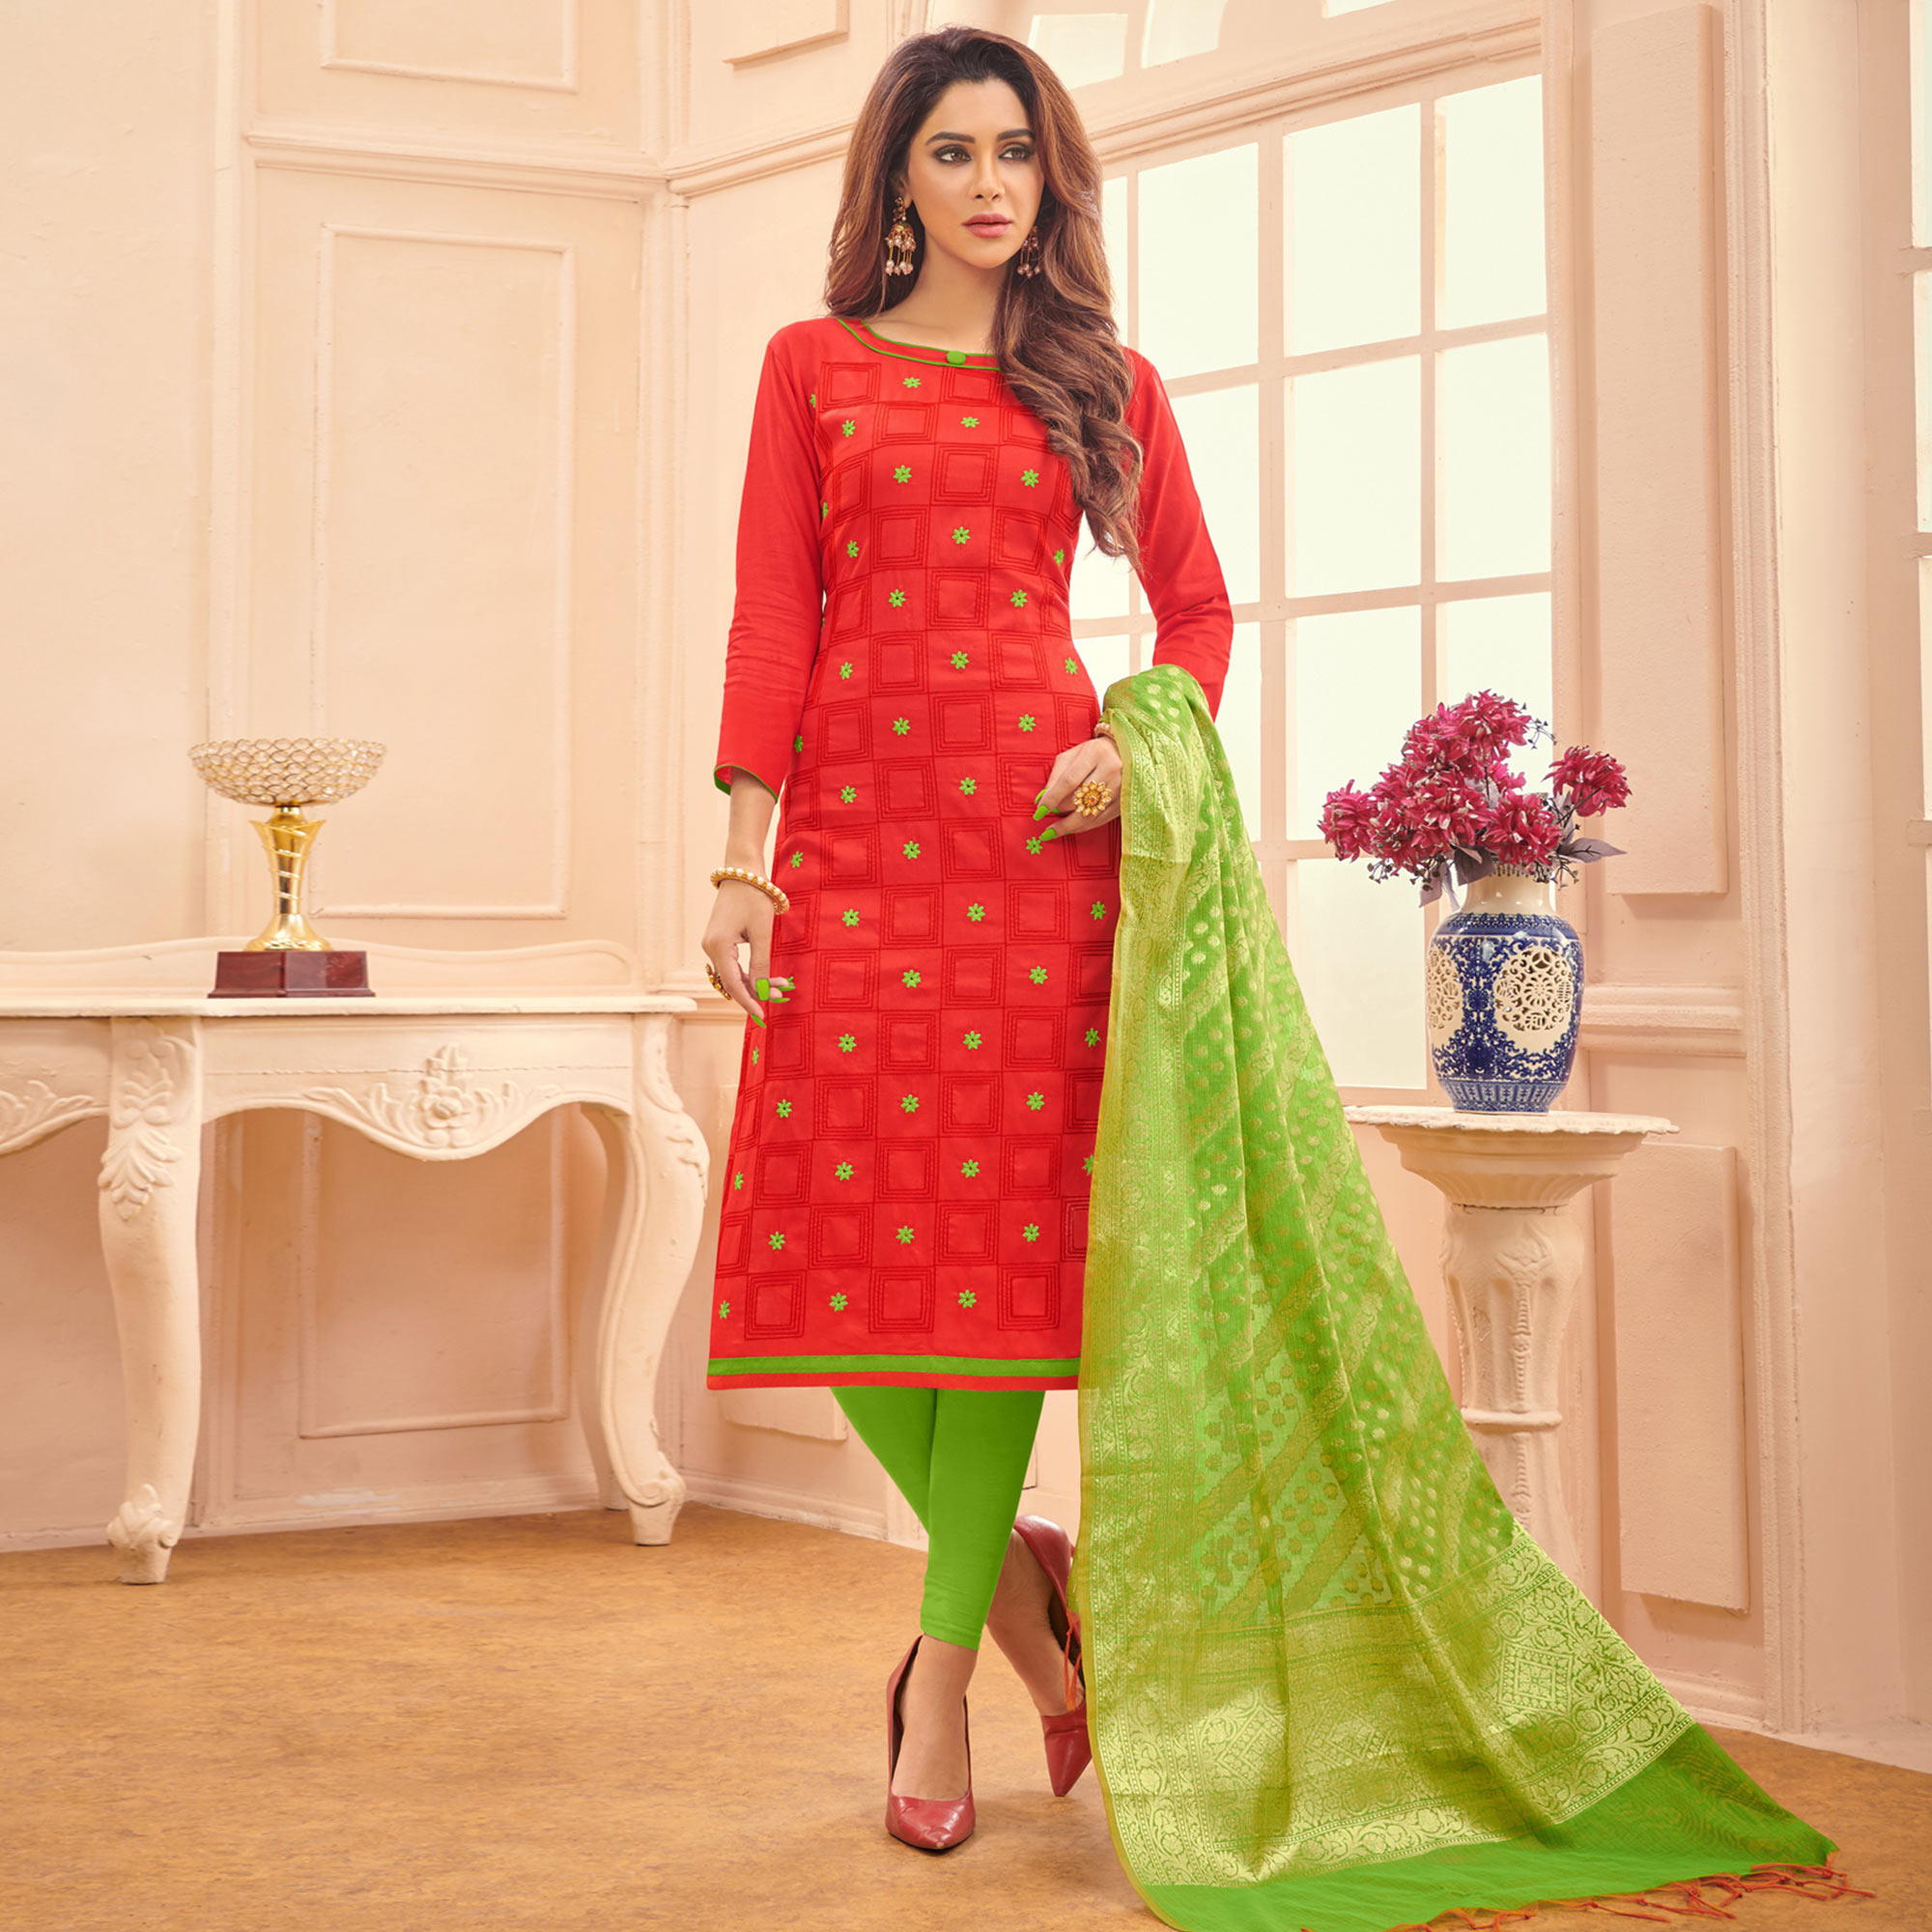 Engrossing Red Colored Festive Wear Embroidered Cotton Dress Material With Banarasi Silk Dupatta